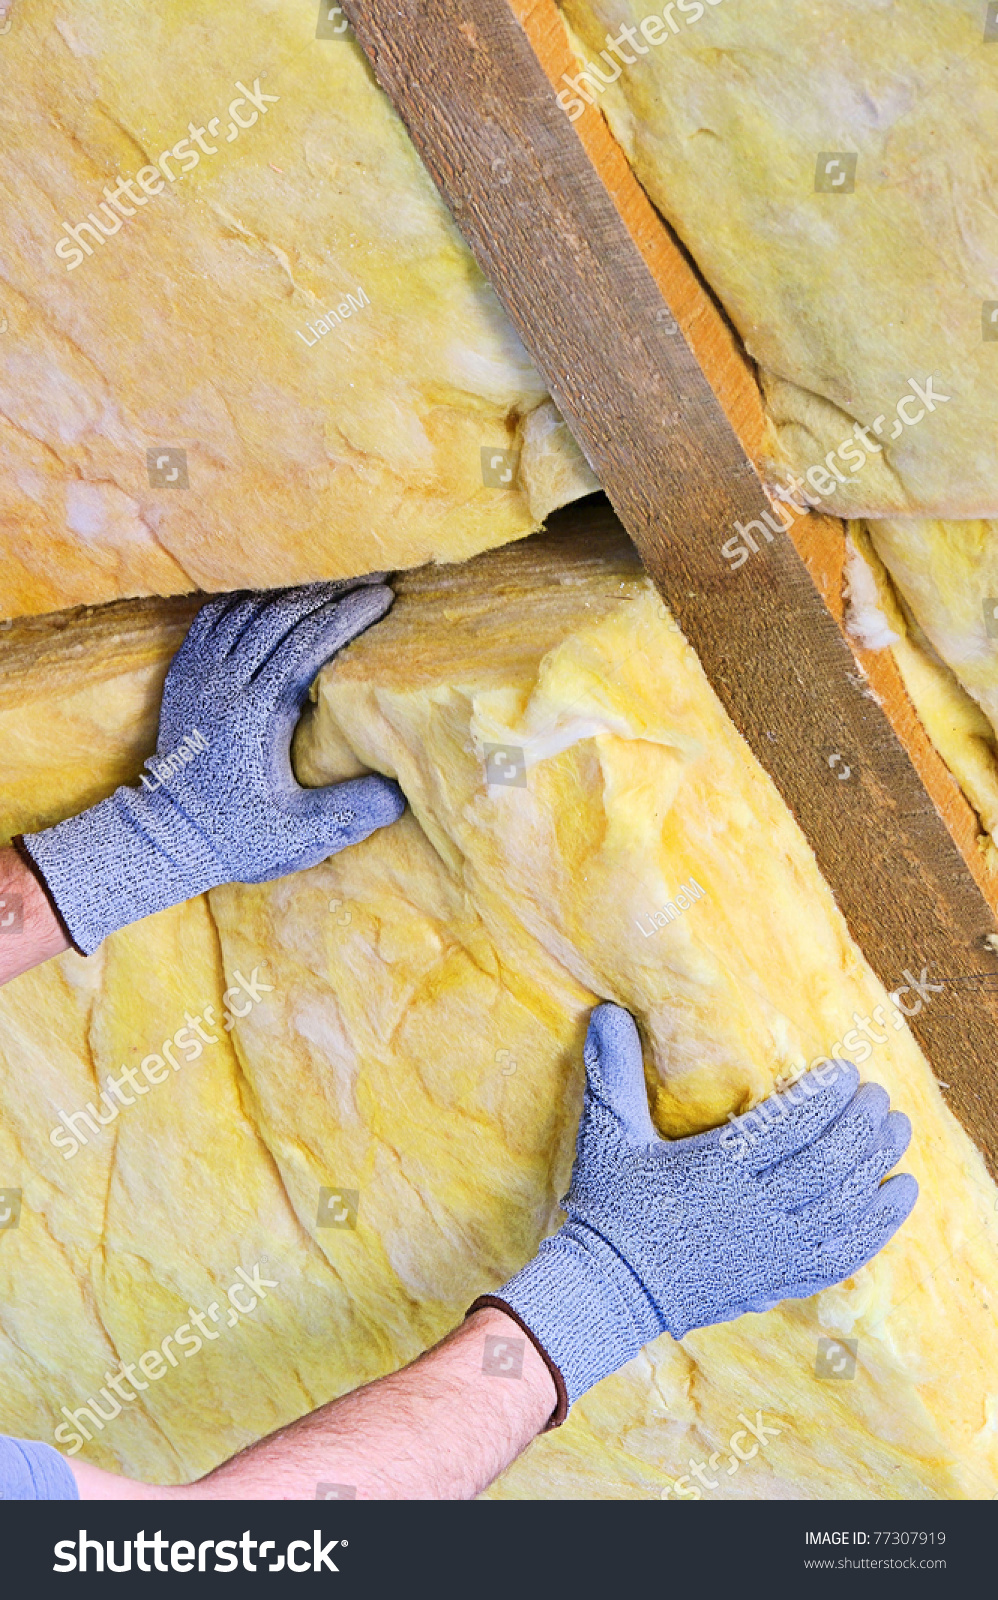 Mineral rock wool stock photo 77307919 shutterstock for Stone mineral wool